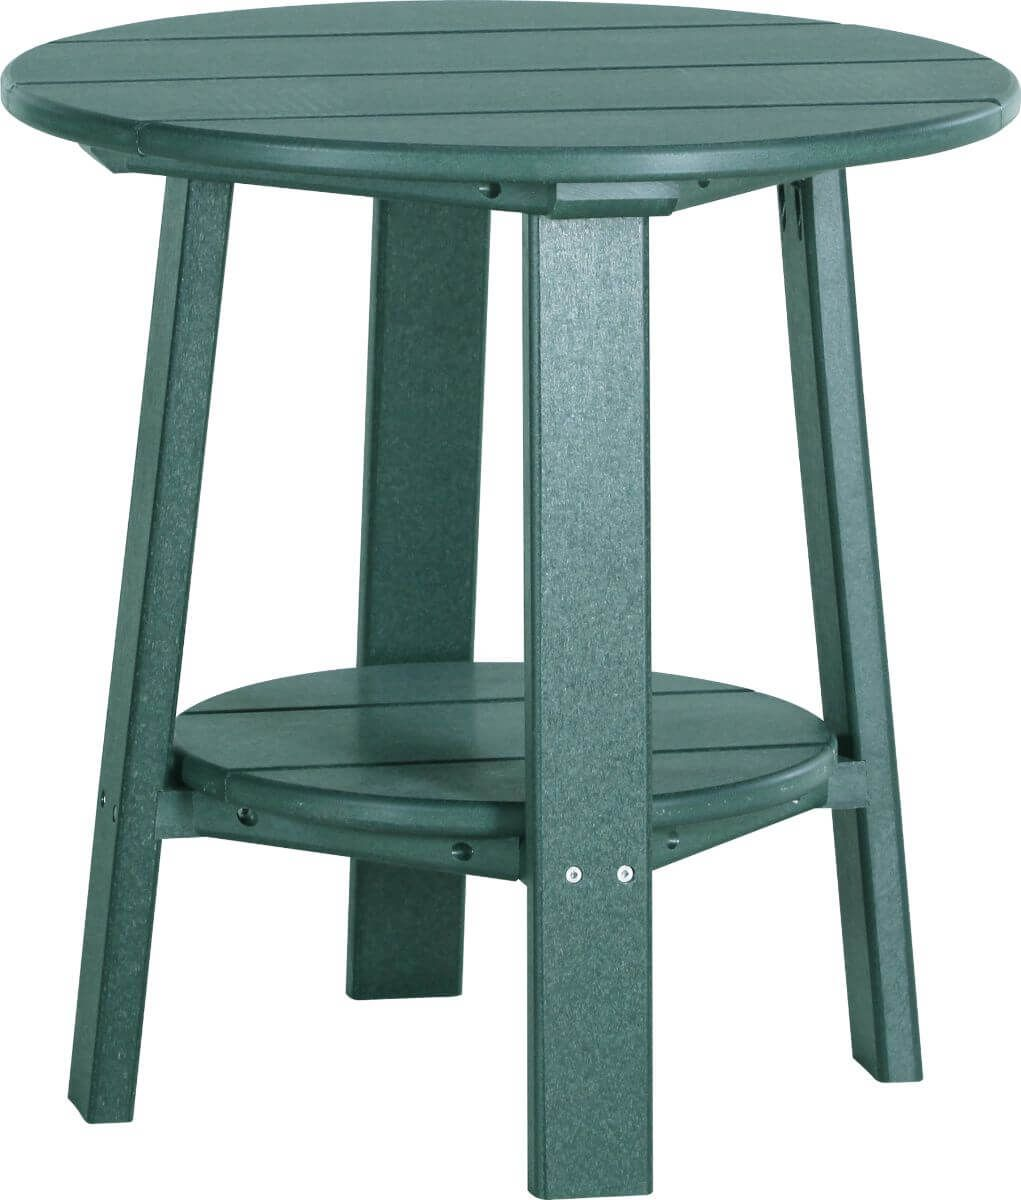 Green Rockaway Outdoor Side Table